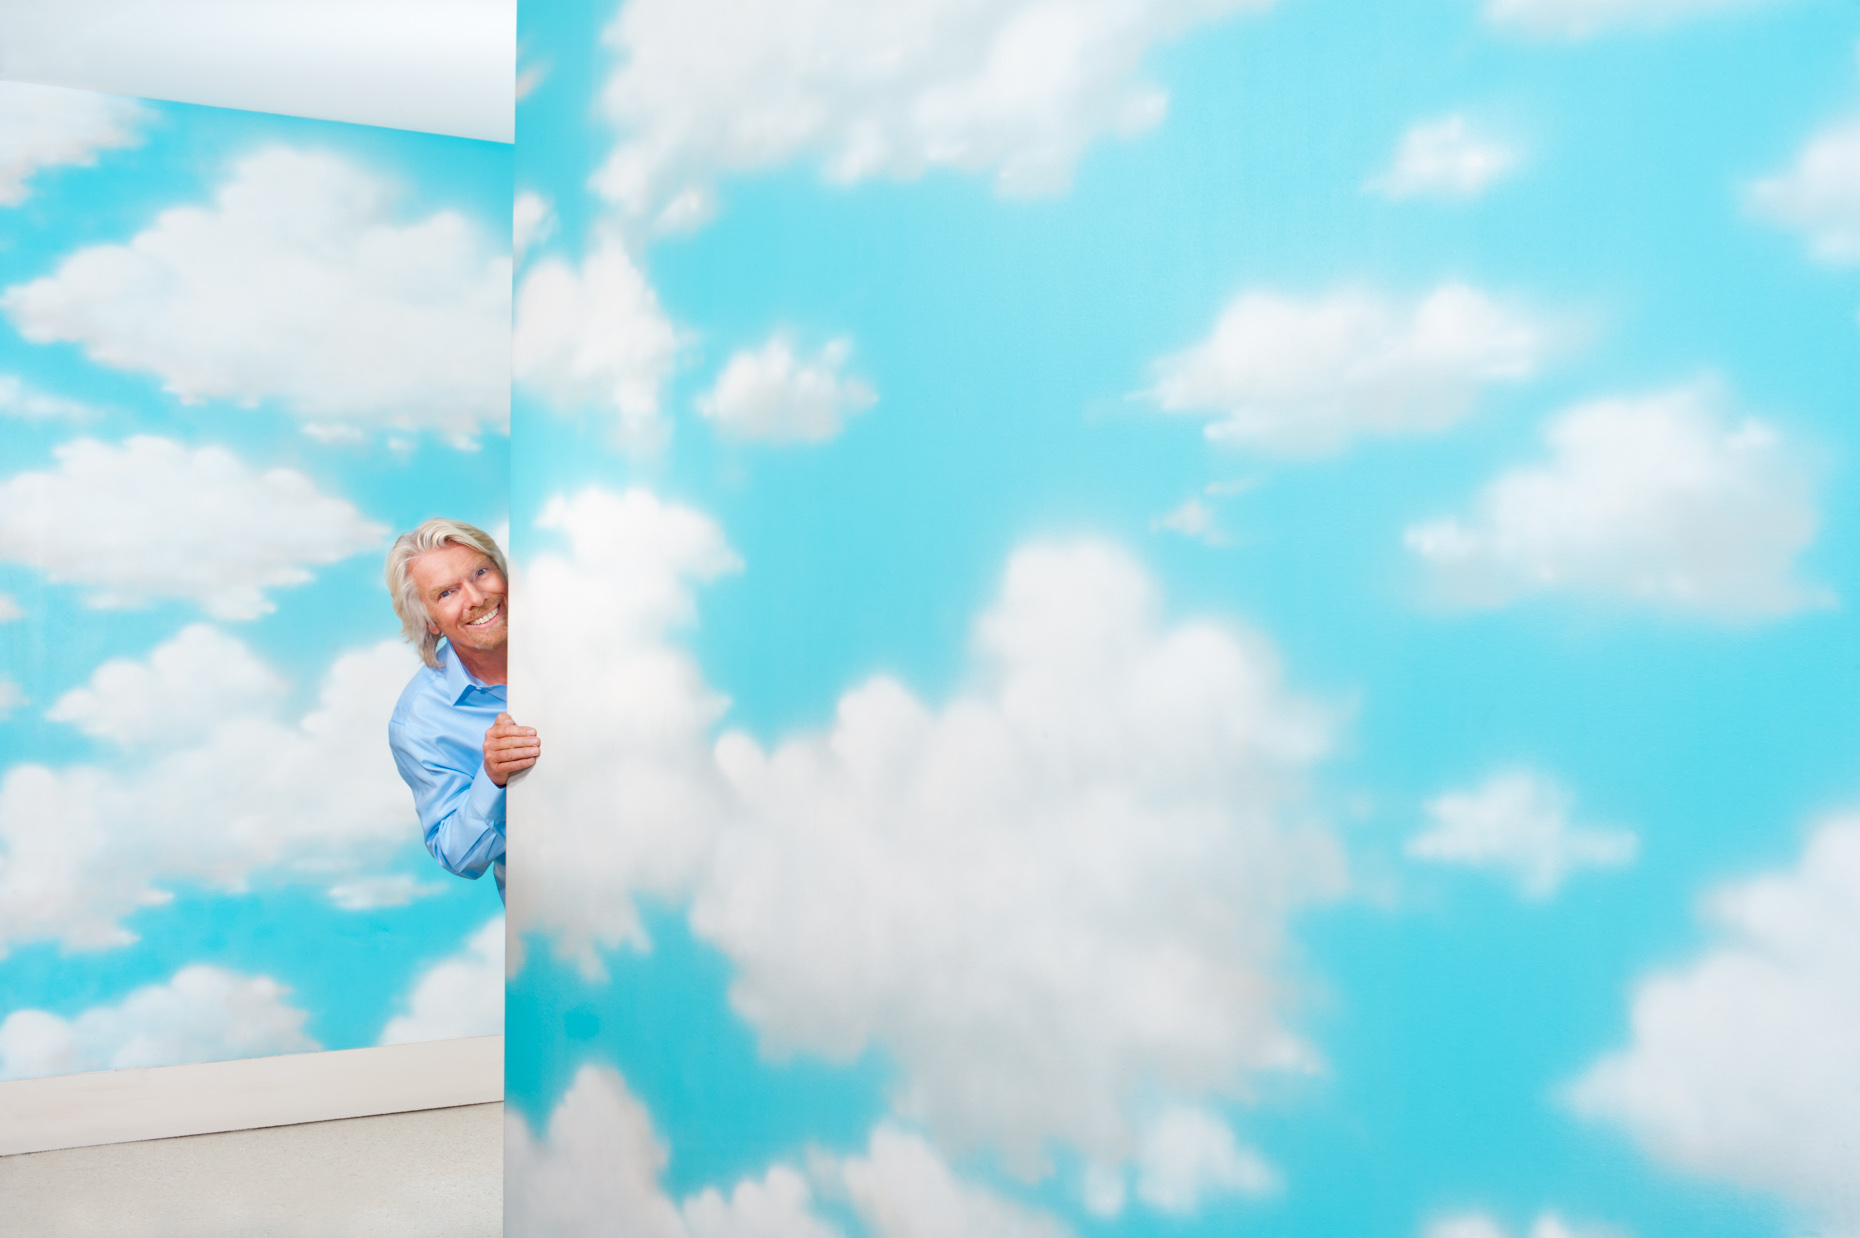 celebrity-editorial-richard-branson-clouds